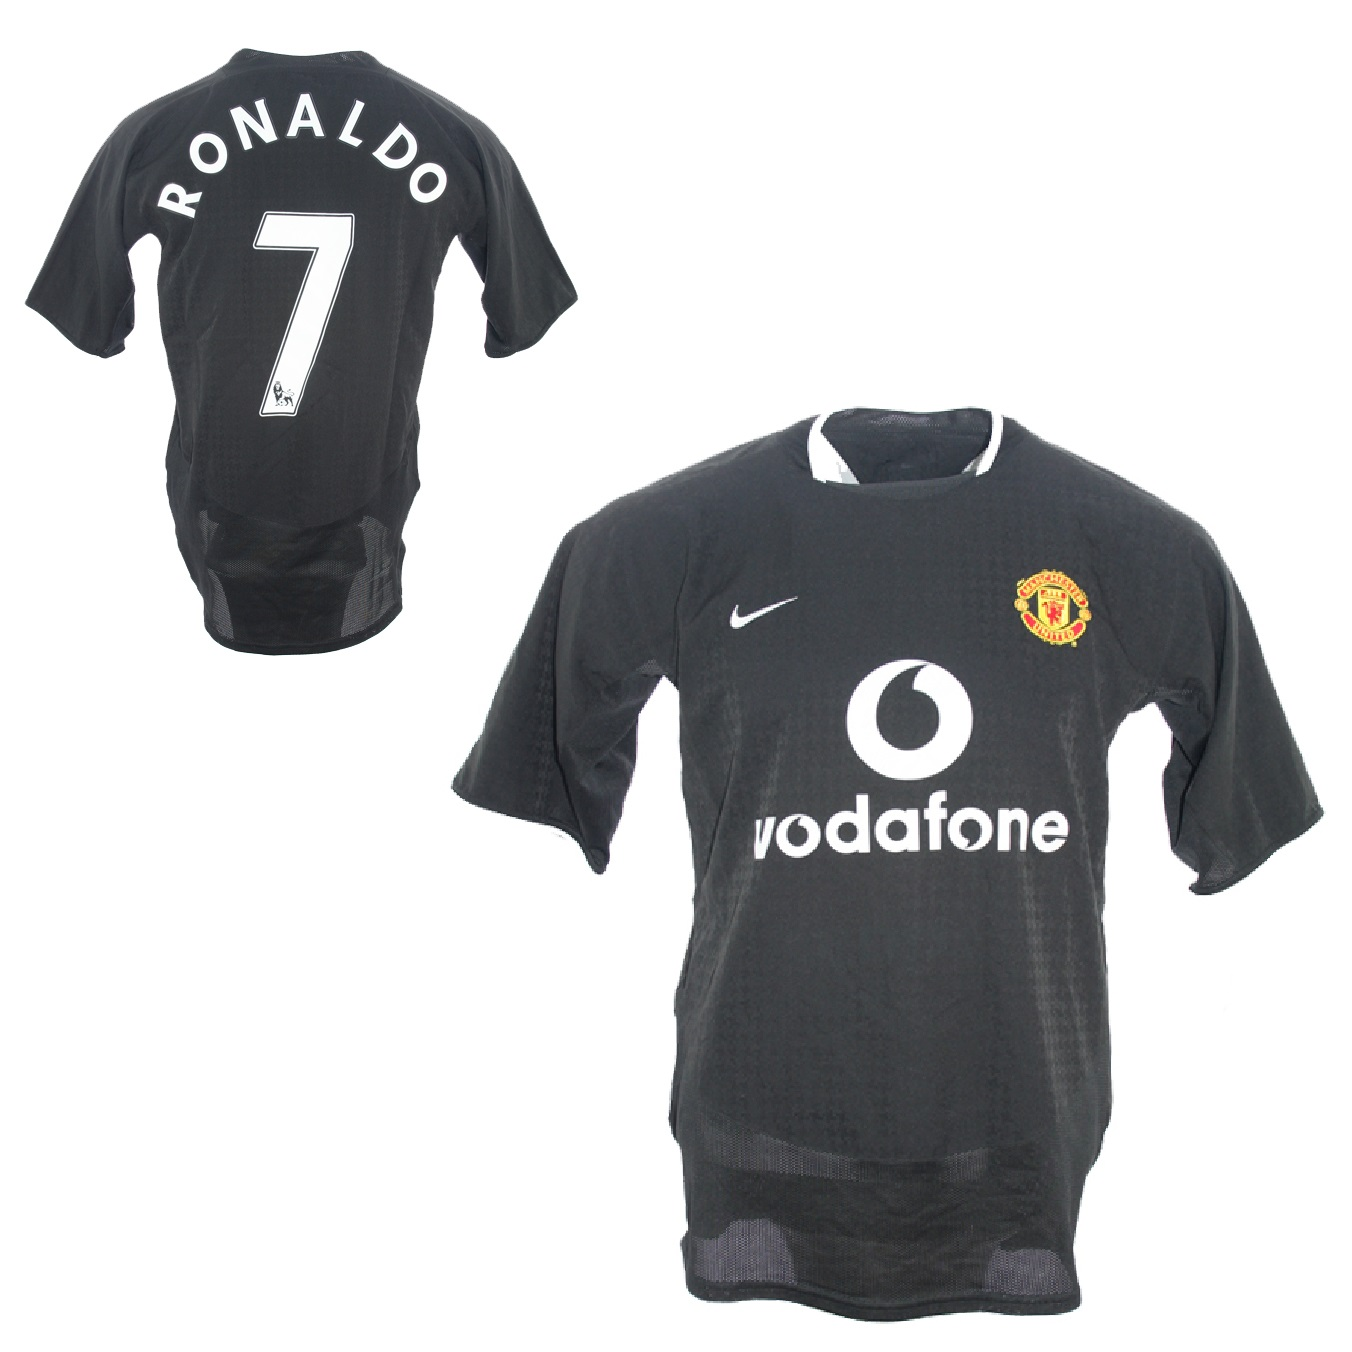 save off ad5ee d0bc7 Nike Manchester United jersey 7 Cristiano Ronaldo 2003/04 ...